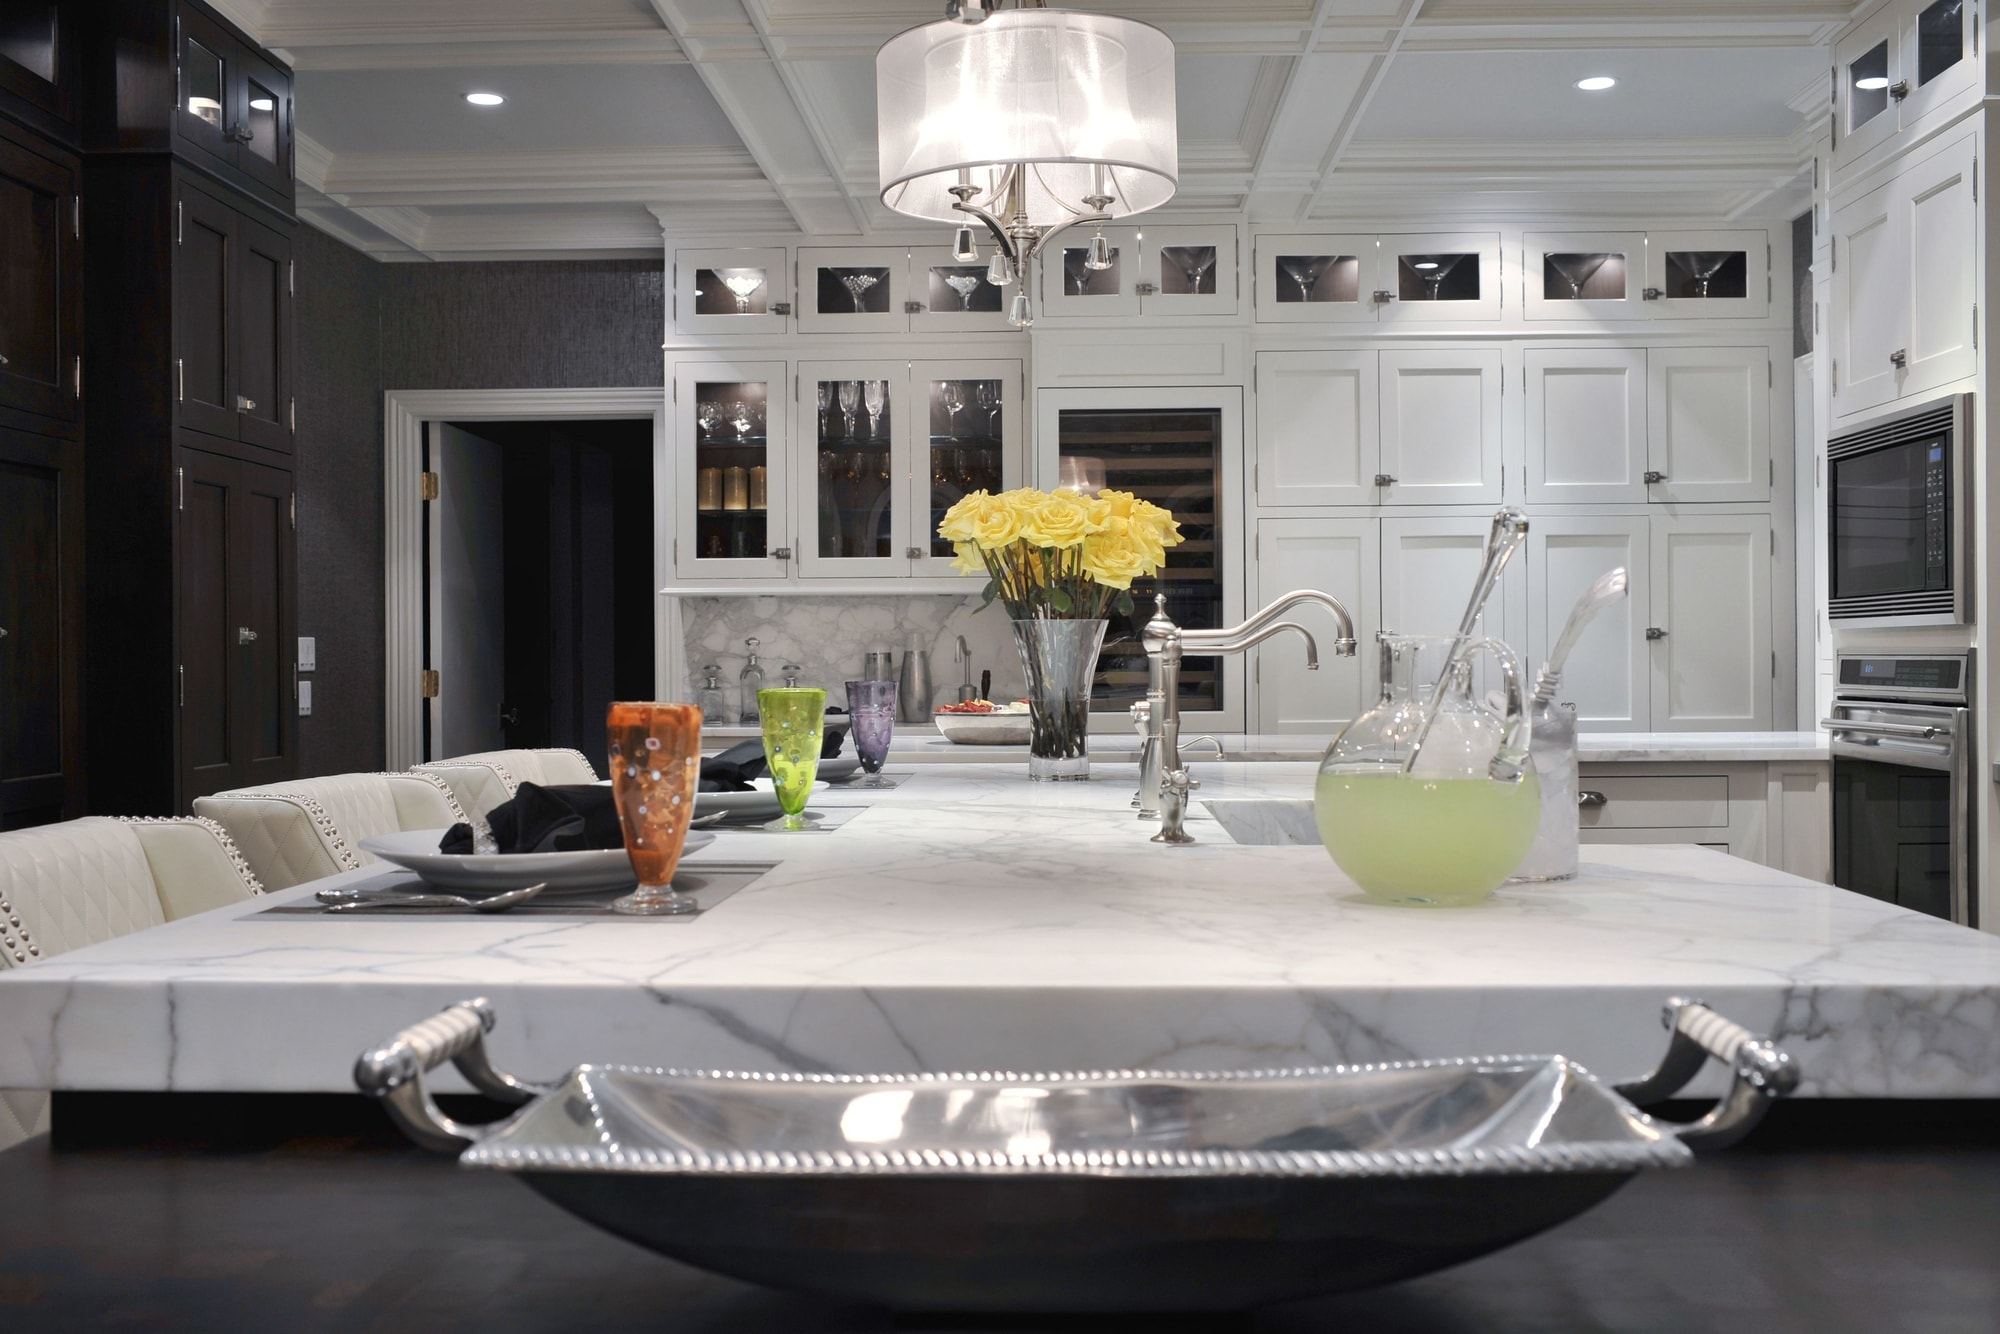 Transitional style kitchen with faucet and sink on center island